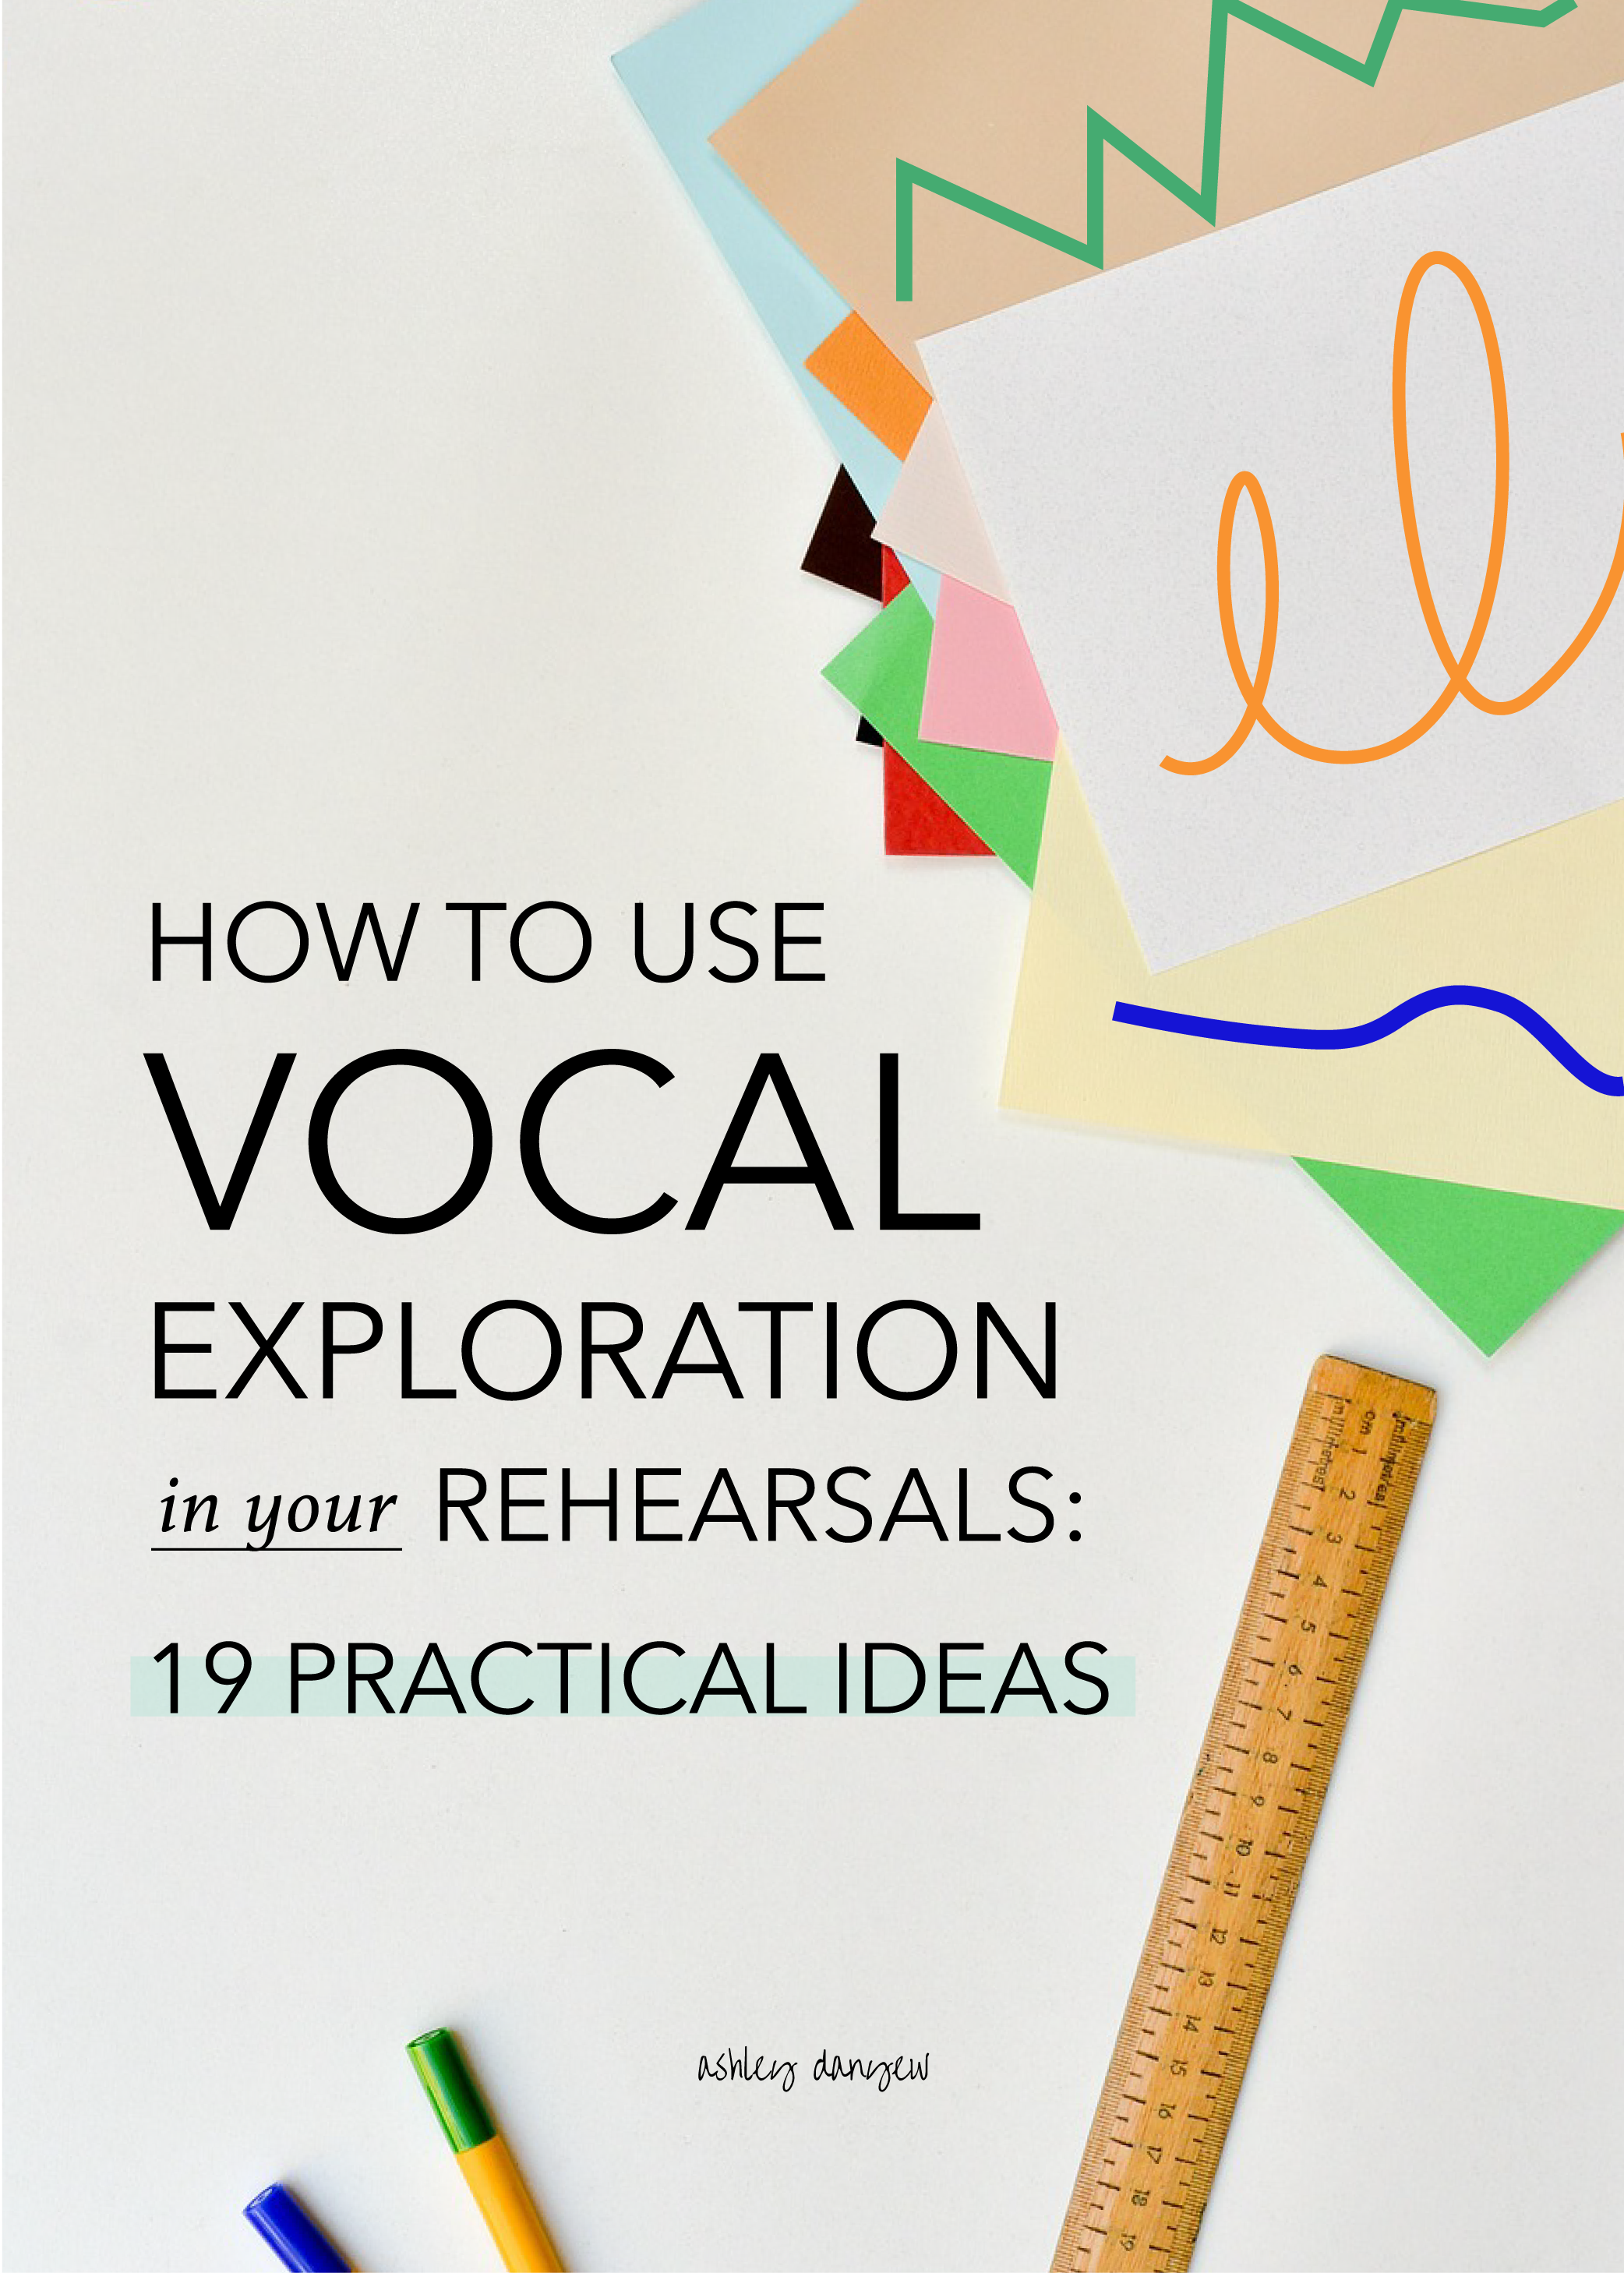 How to Use Vocal Exploration in Your Rehearsals: 19 Practical Ideas